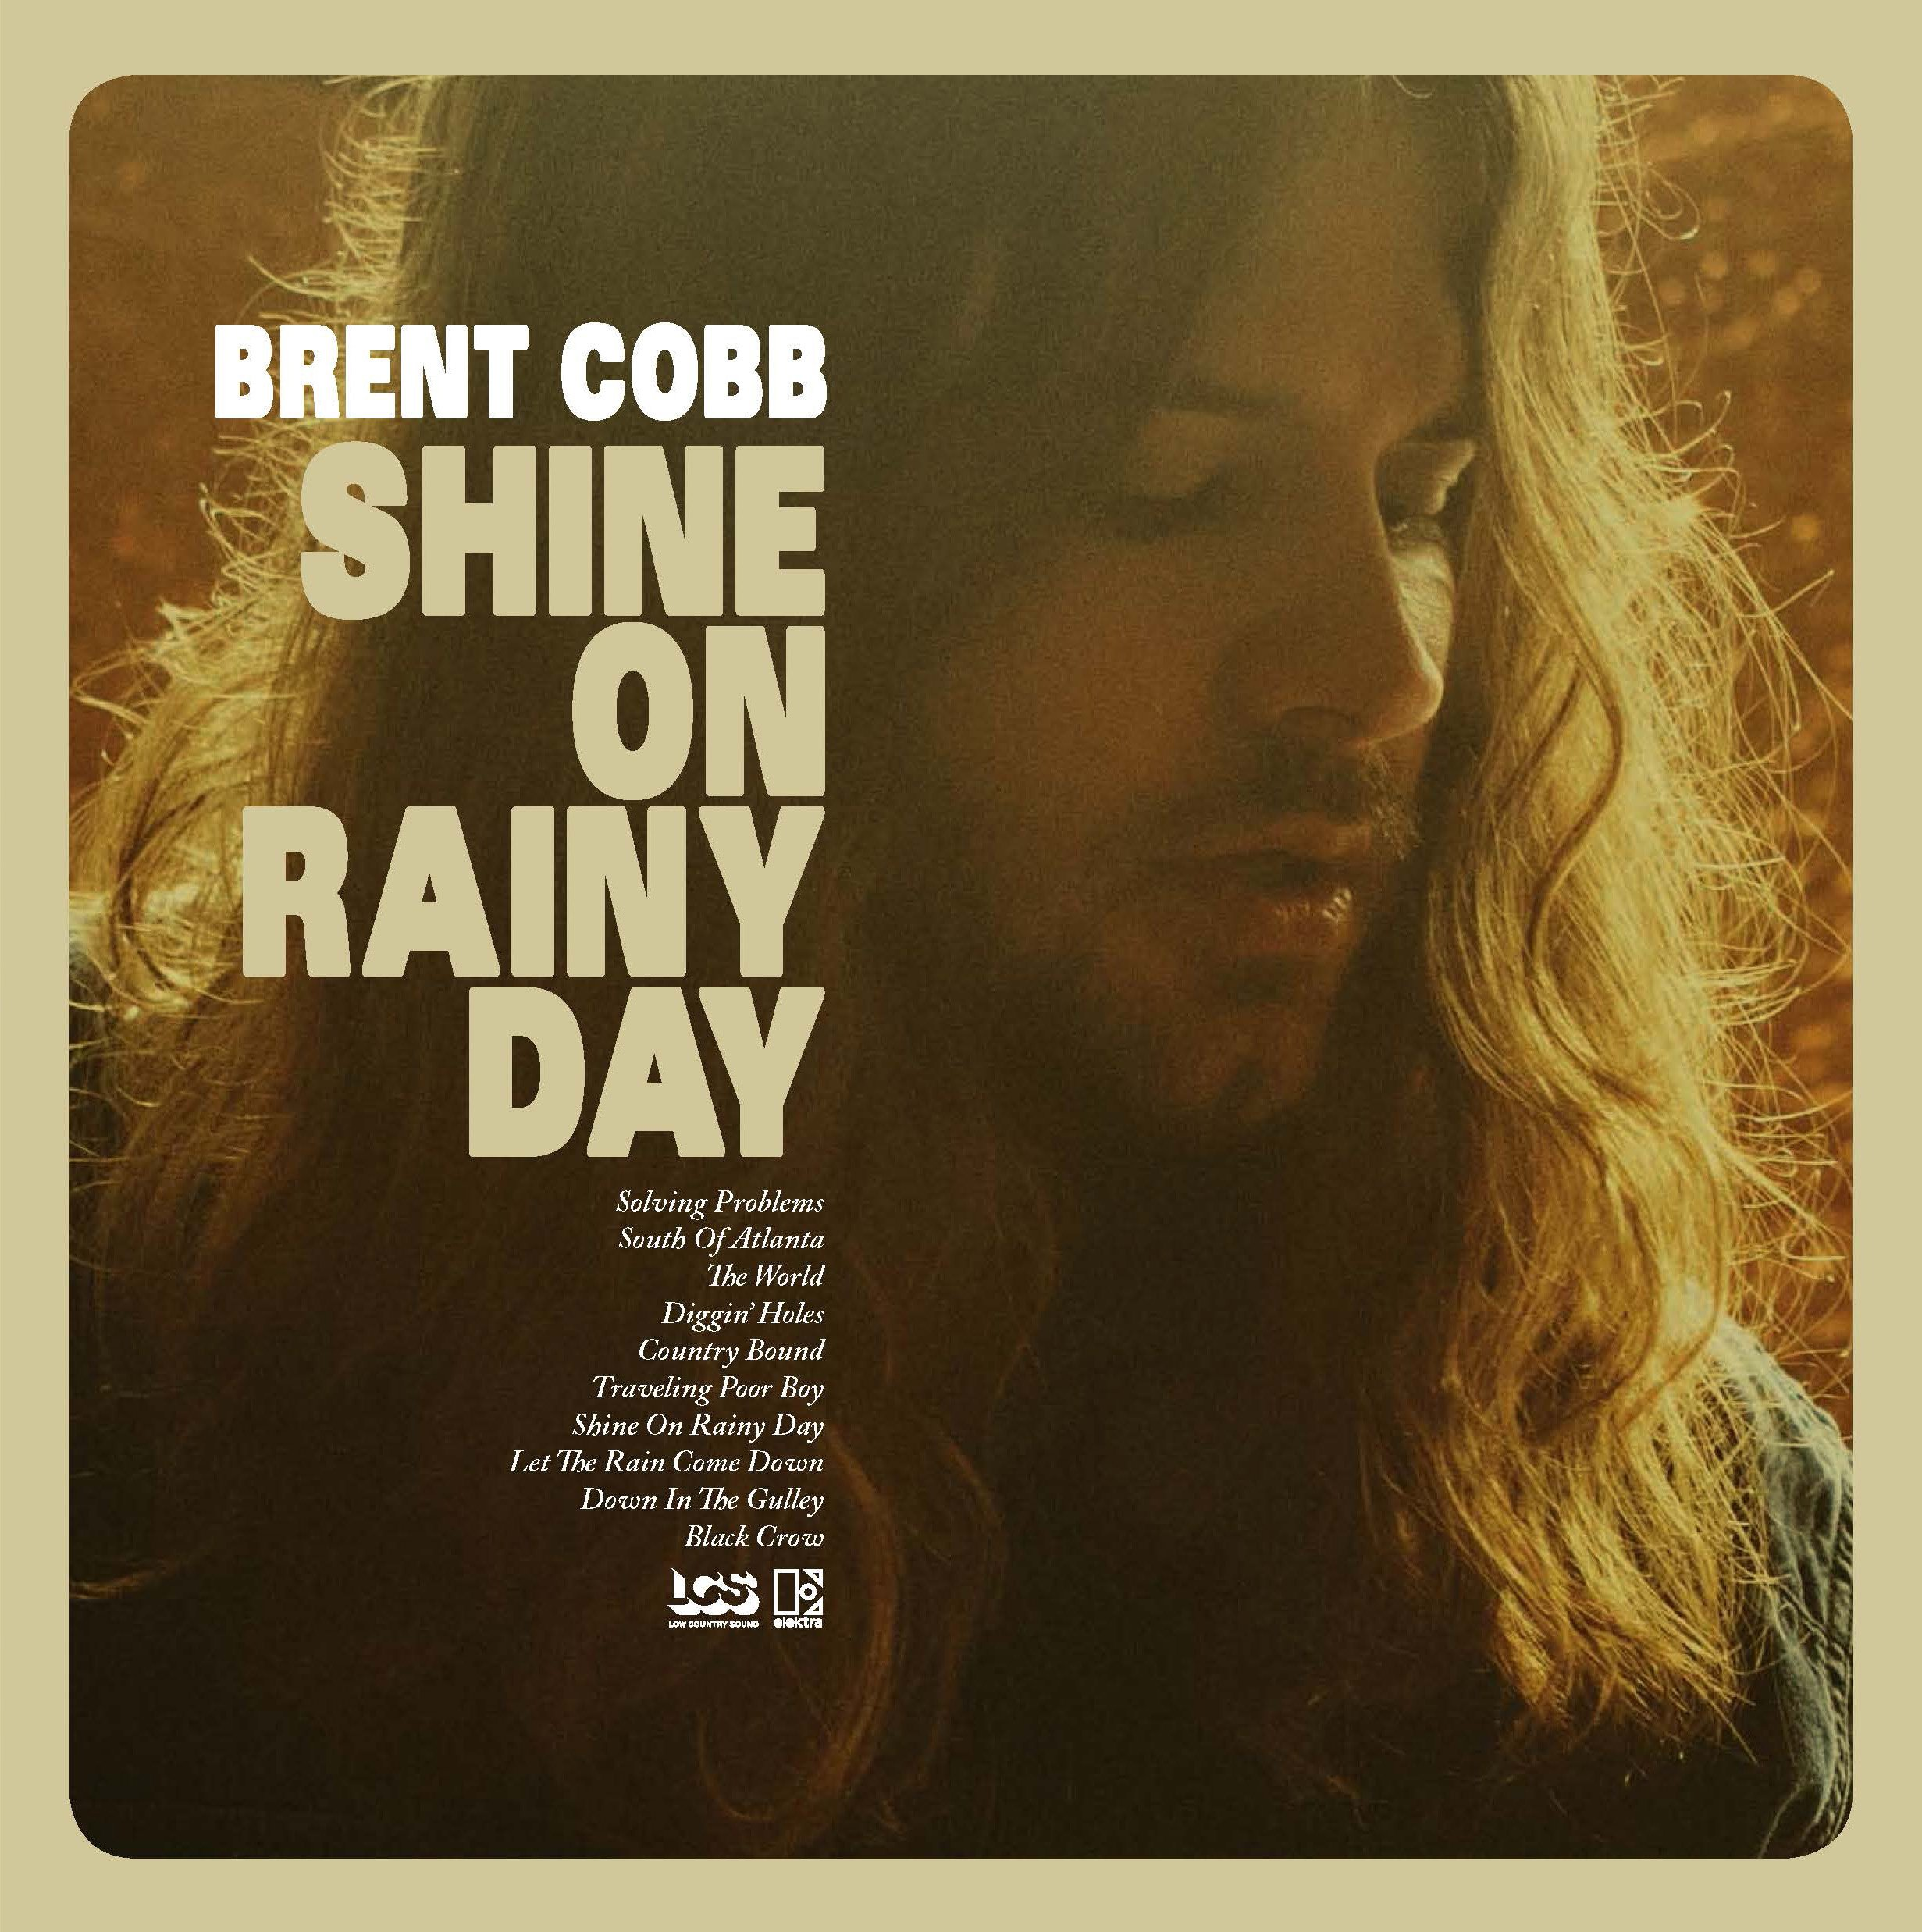 Shine on Rainy Day Album